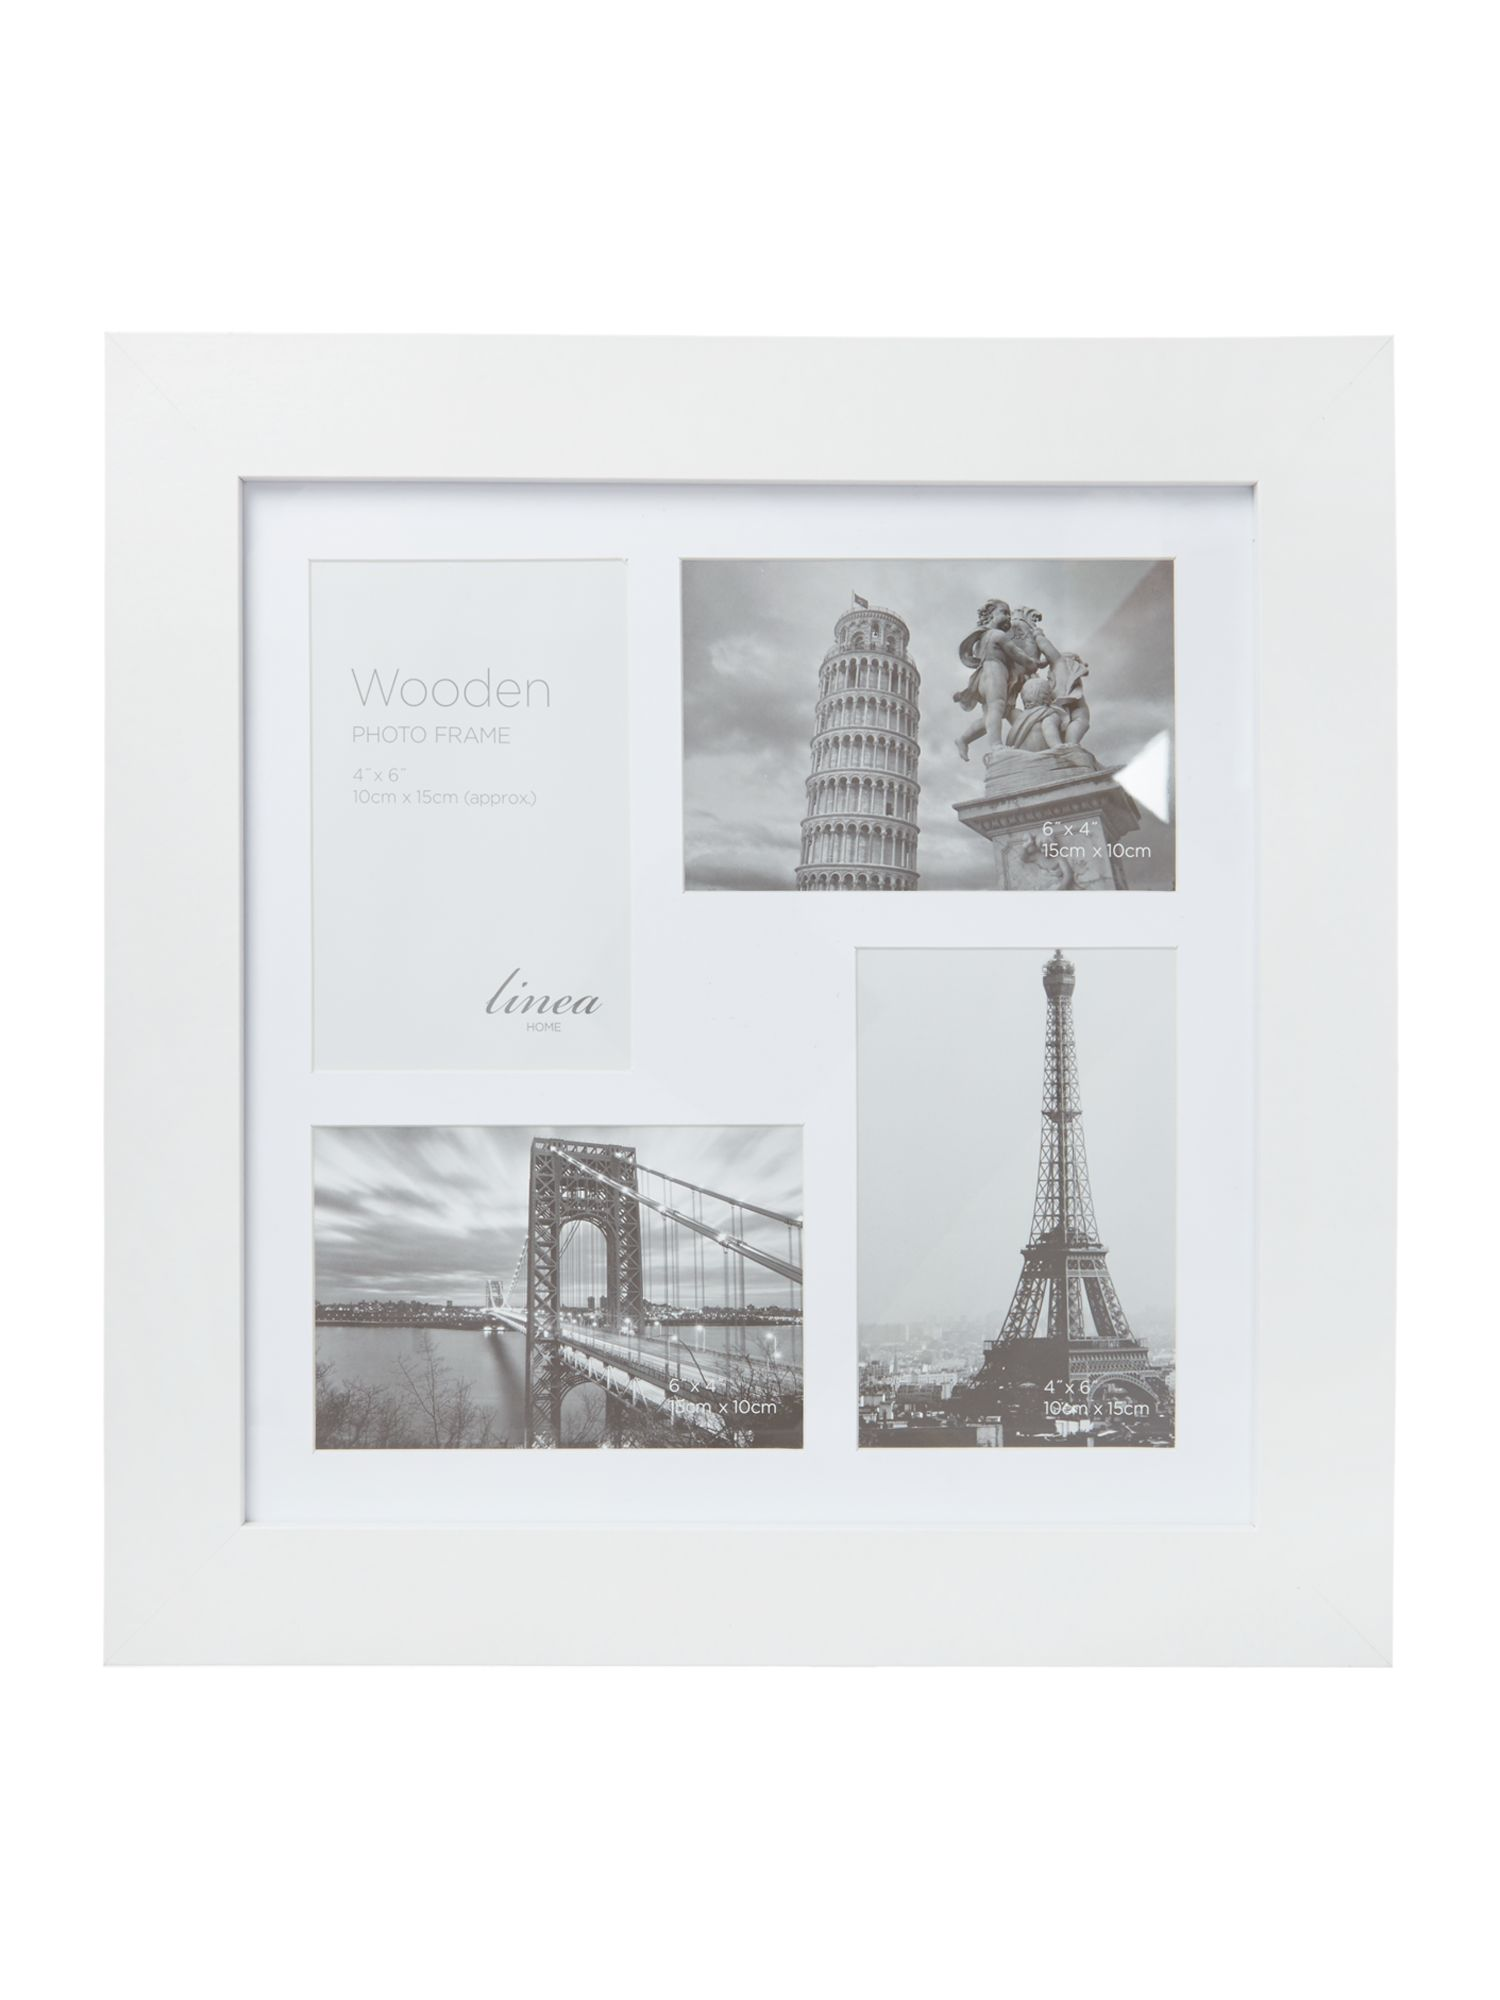 White wood 4 aperture photo frame